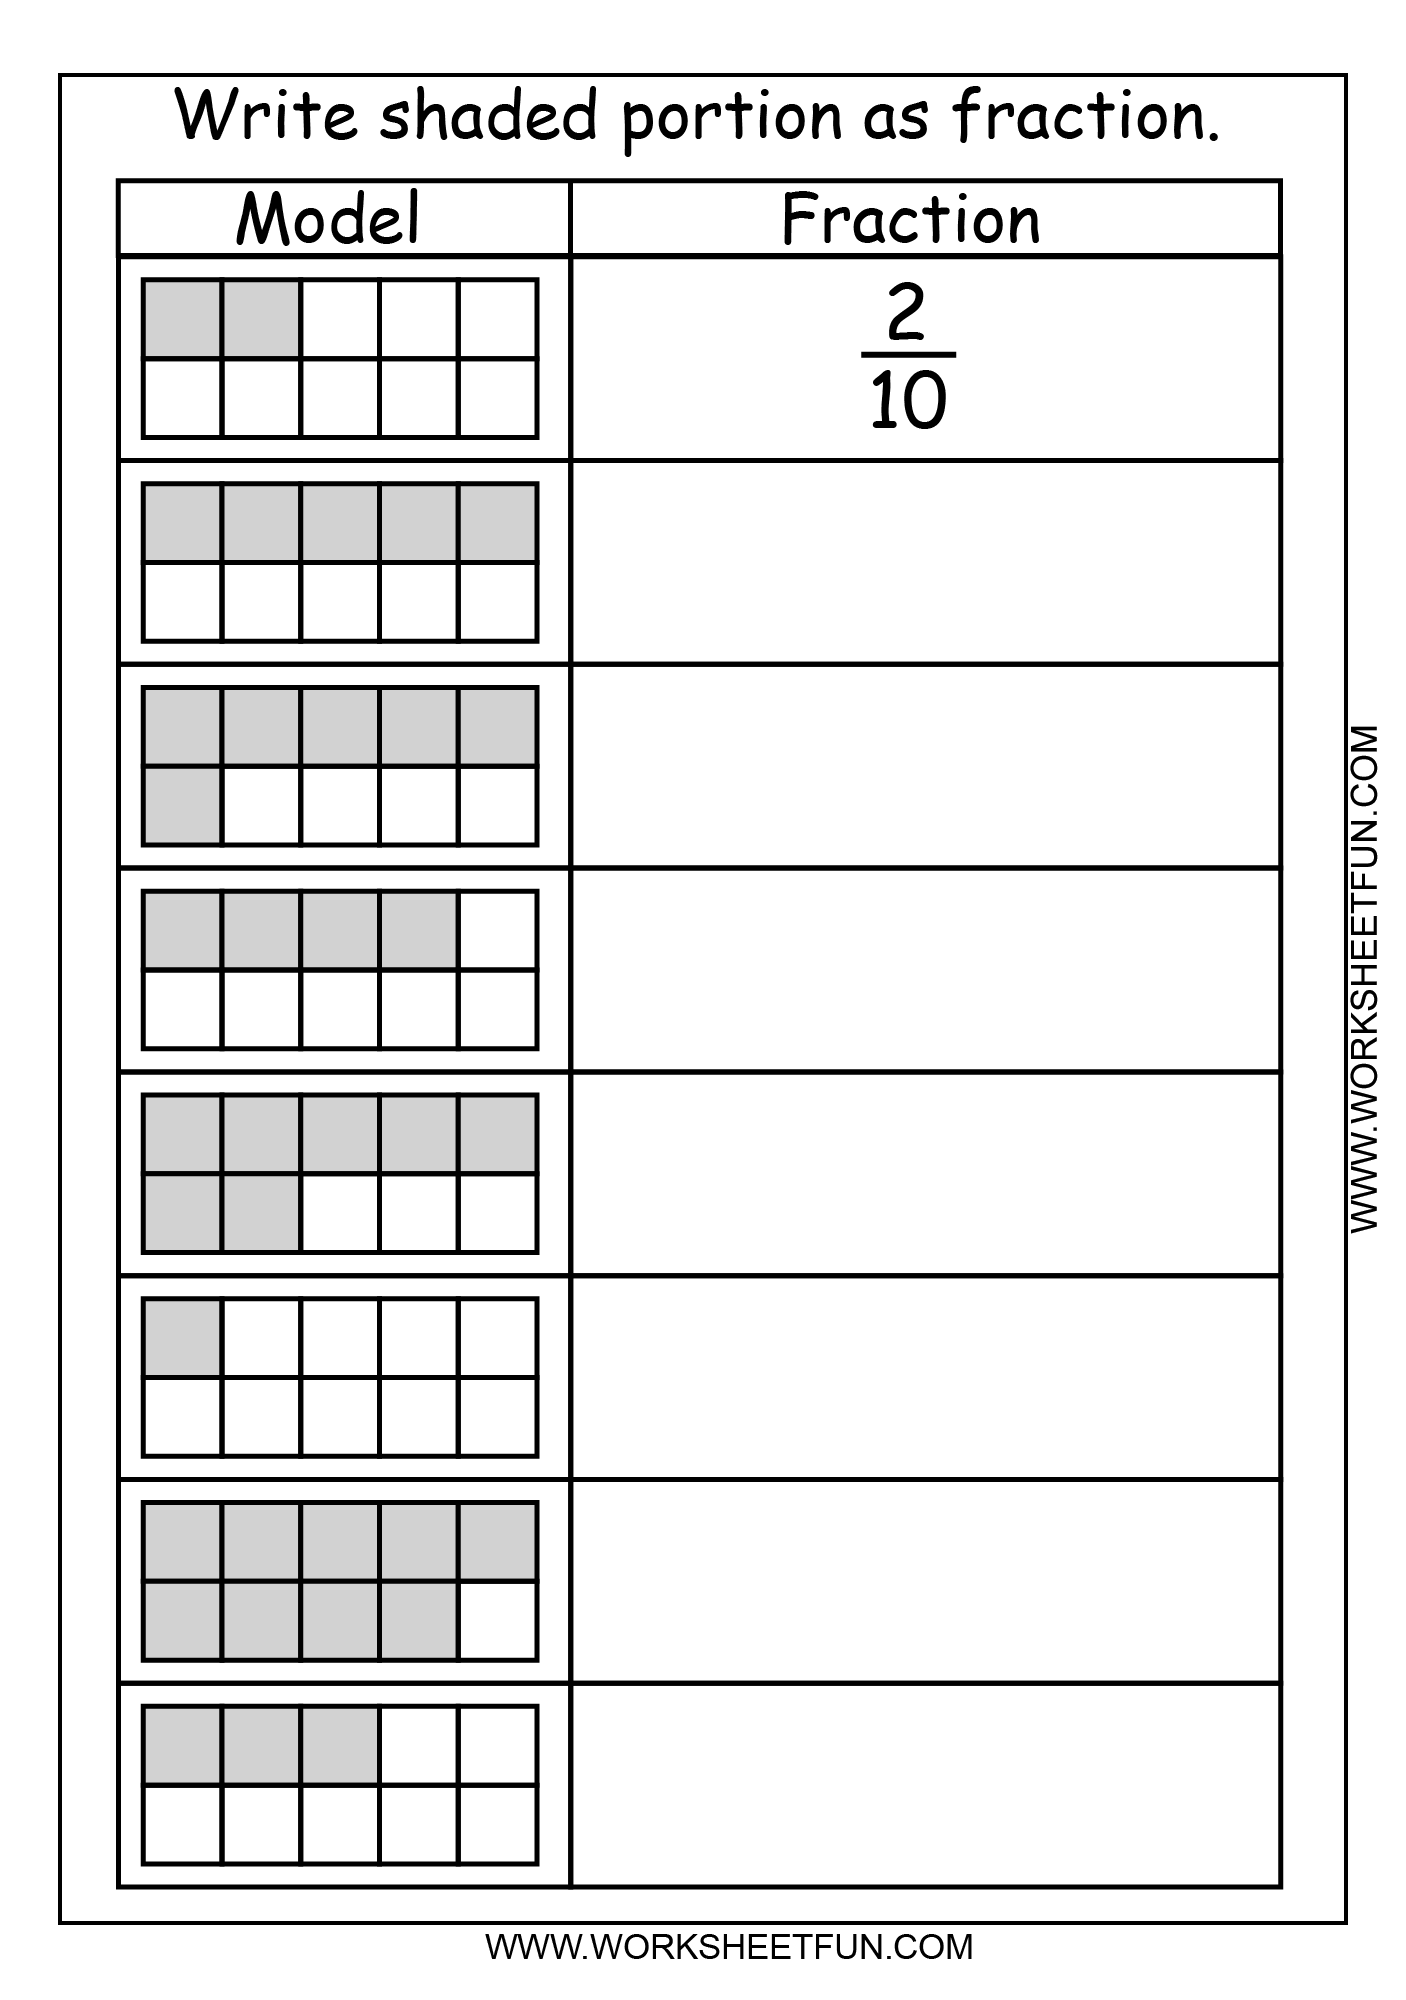 Fraction Model 2 Worksheets Free Printable